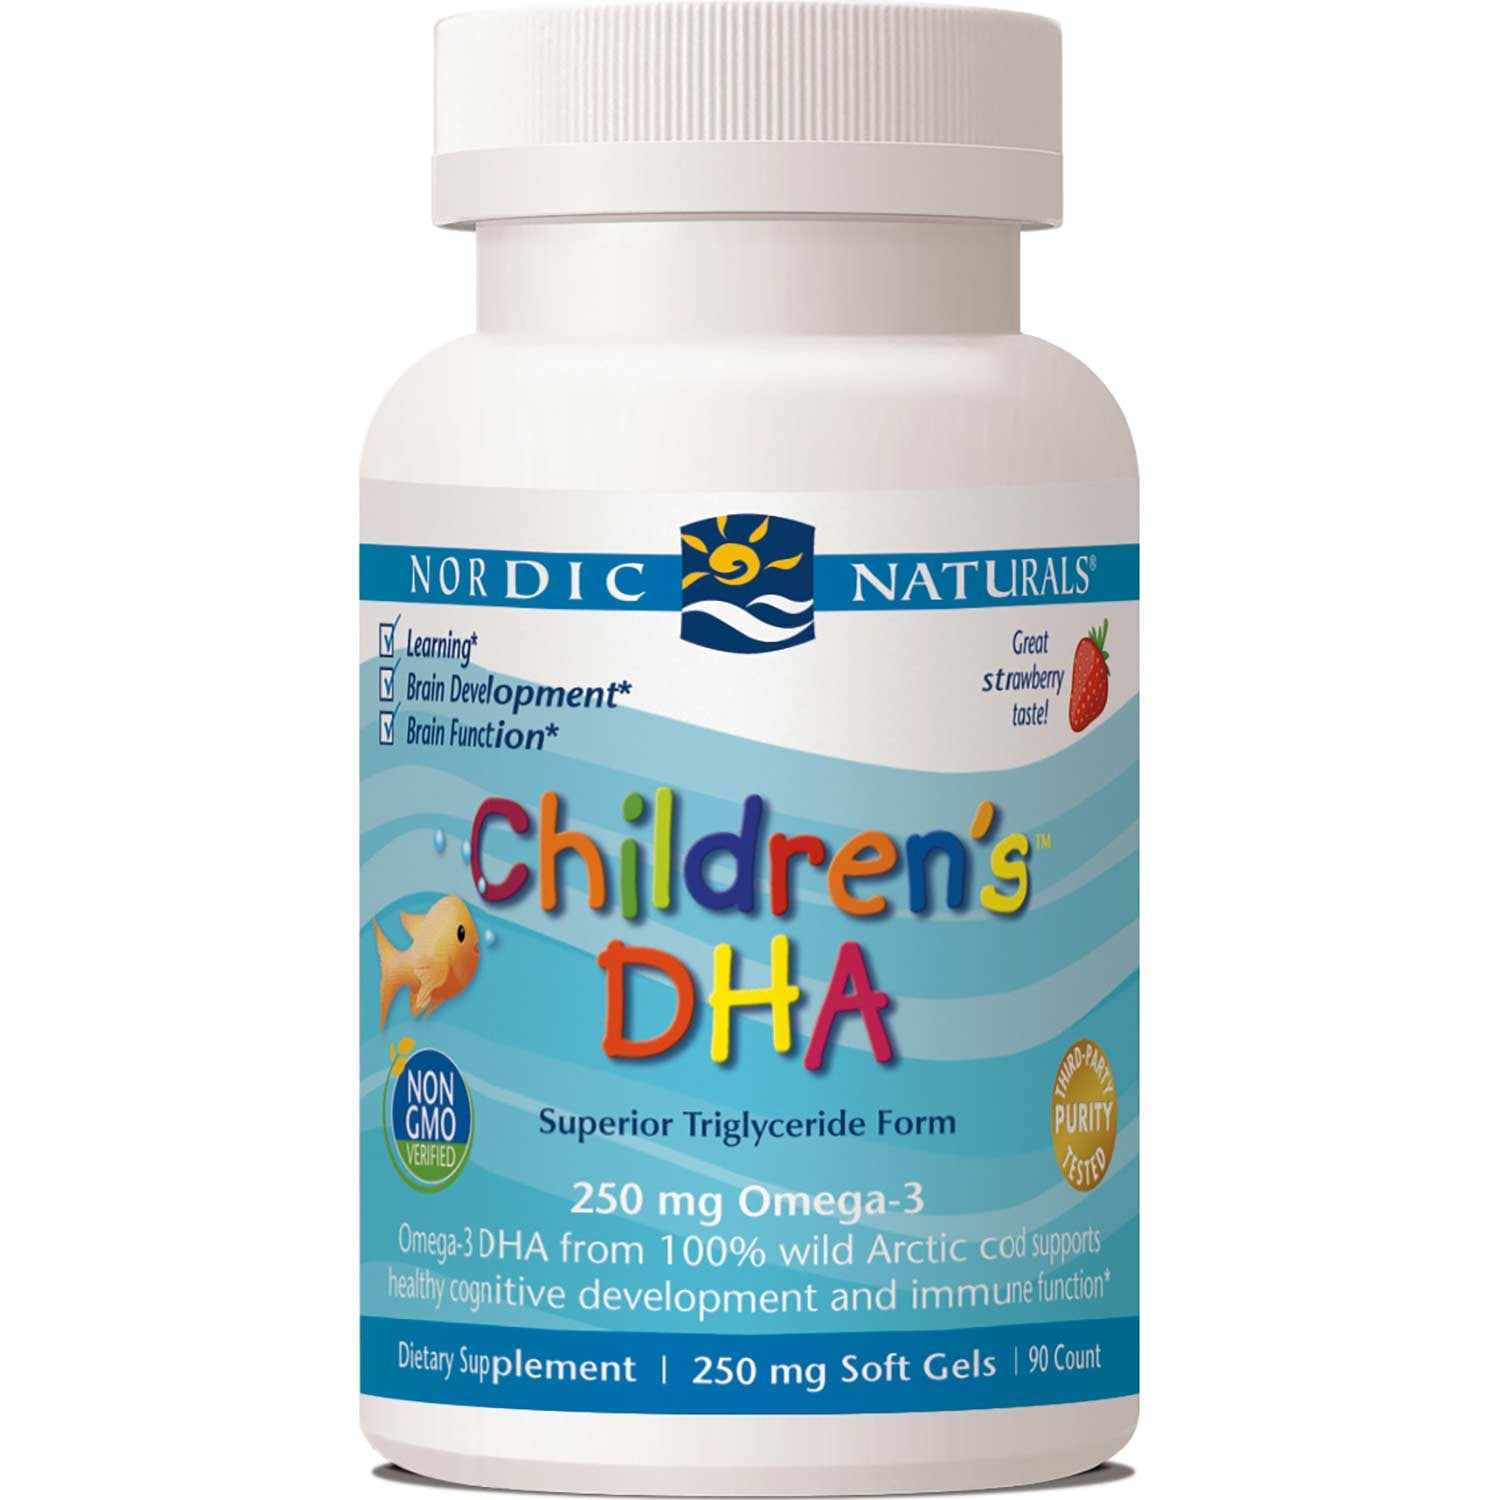 Nordic Naturals Children's DHA 250 mg - Strawberry, 90 sgls.